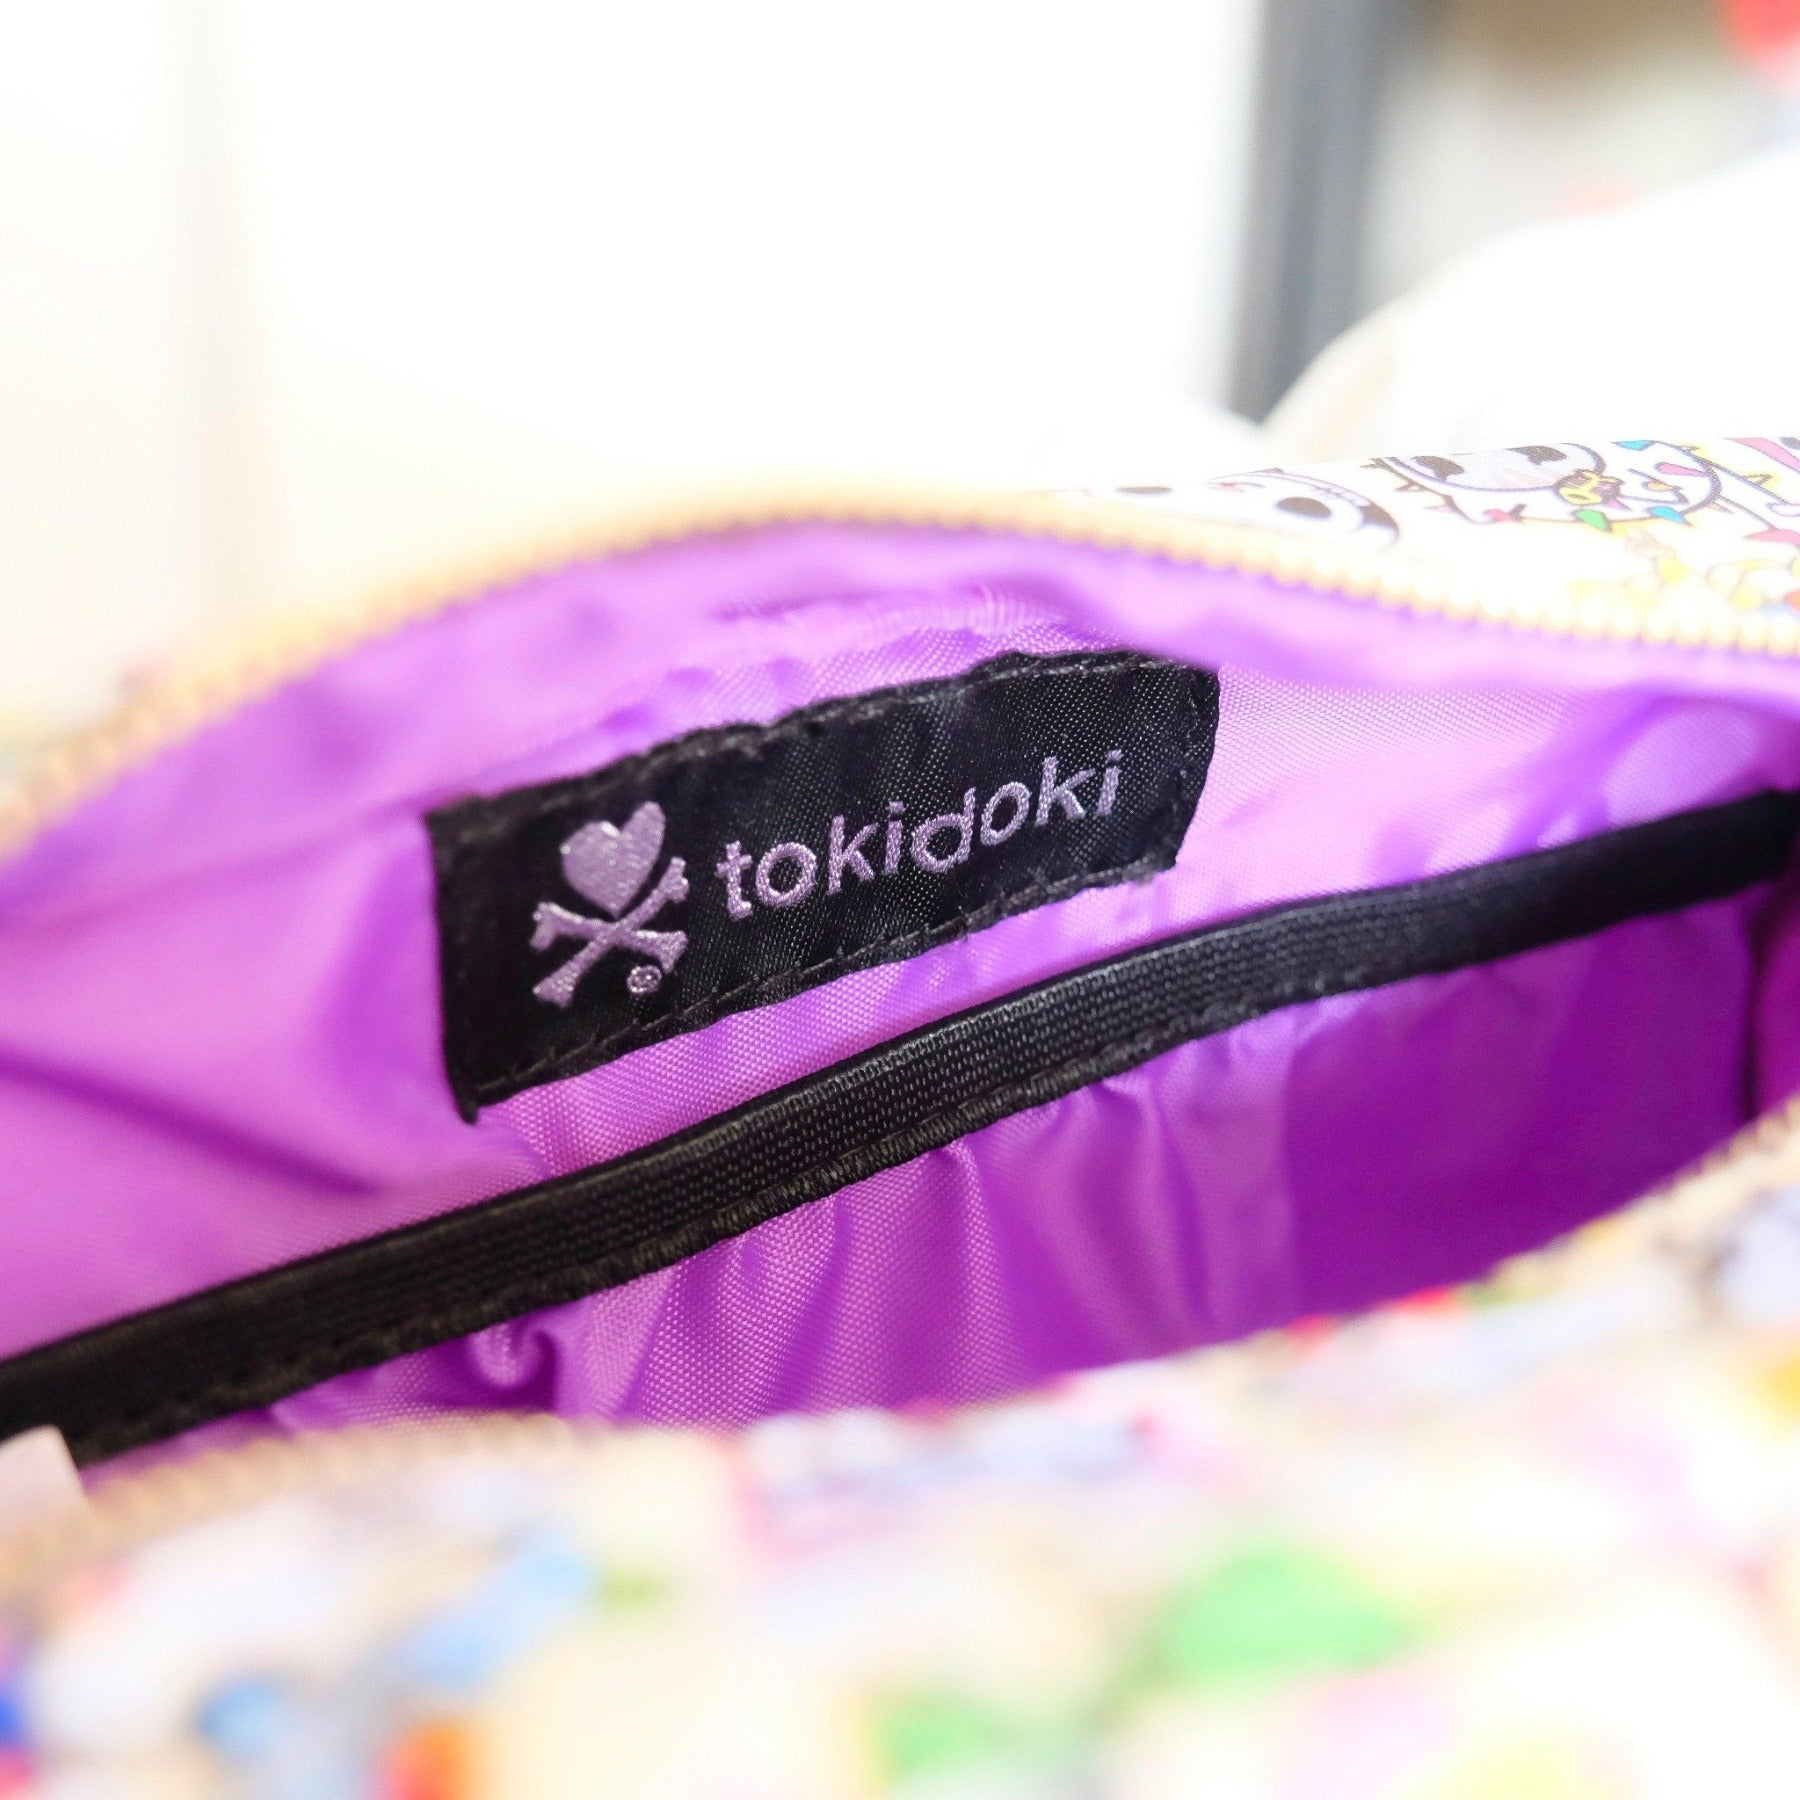 tokidoki kawaii Chained Love Cosmetic/Storage Pouch purple interior